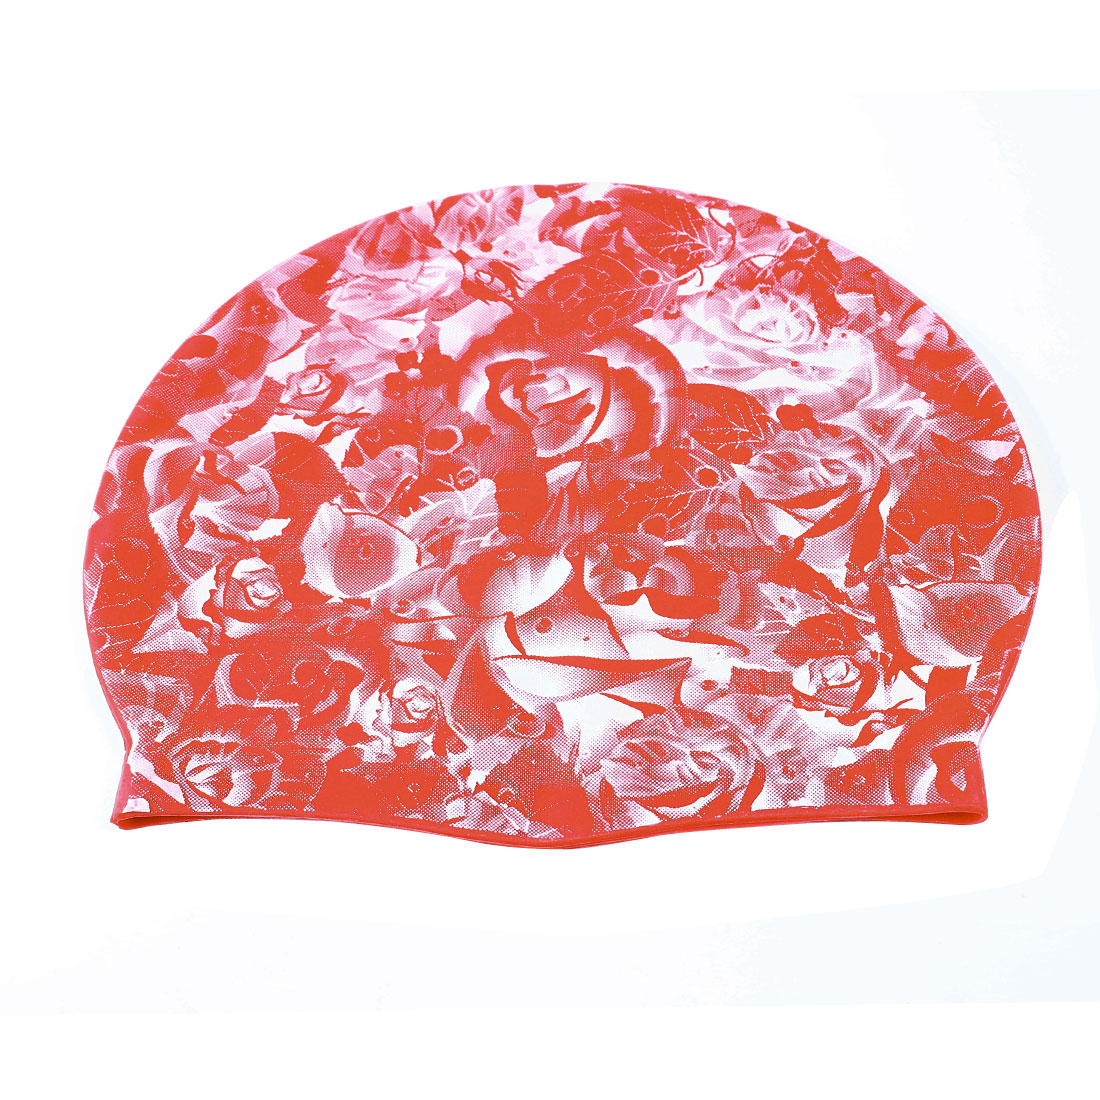 Stretchy White Flower Pattern Orange Red Silicone Swimming Hat Cap for Man Woman